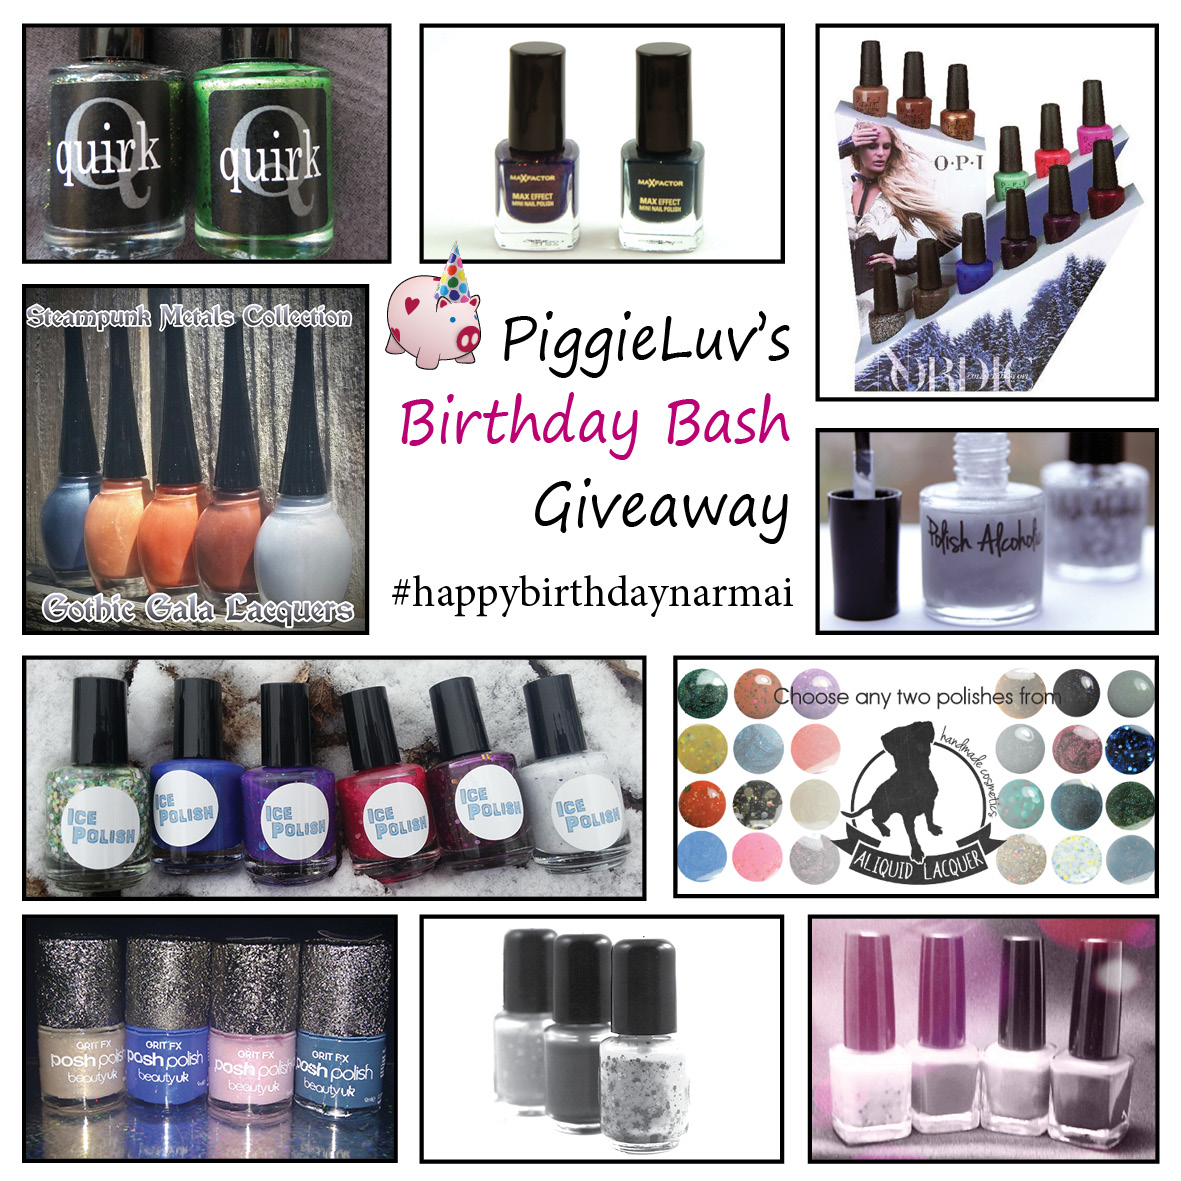 PiggieLuv's Birthday Bash Giveaway!